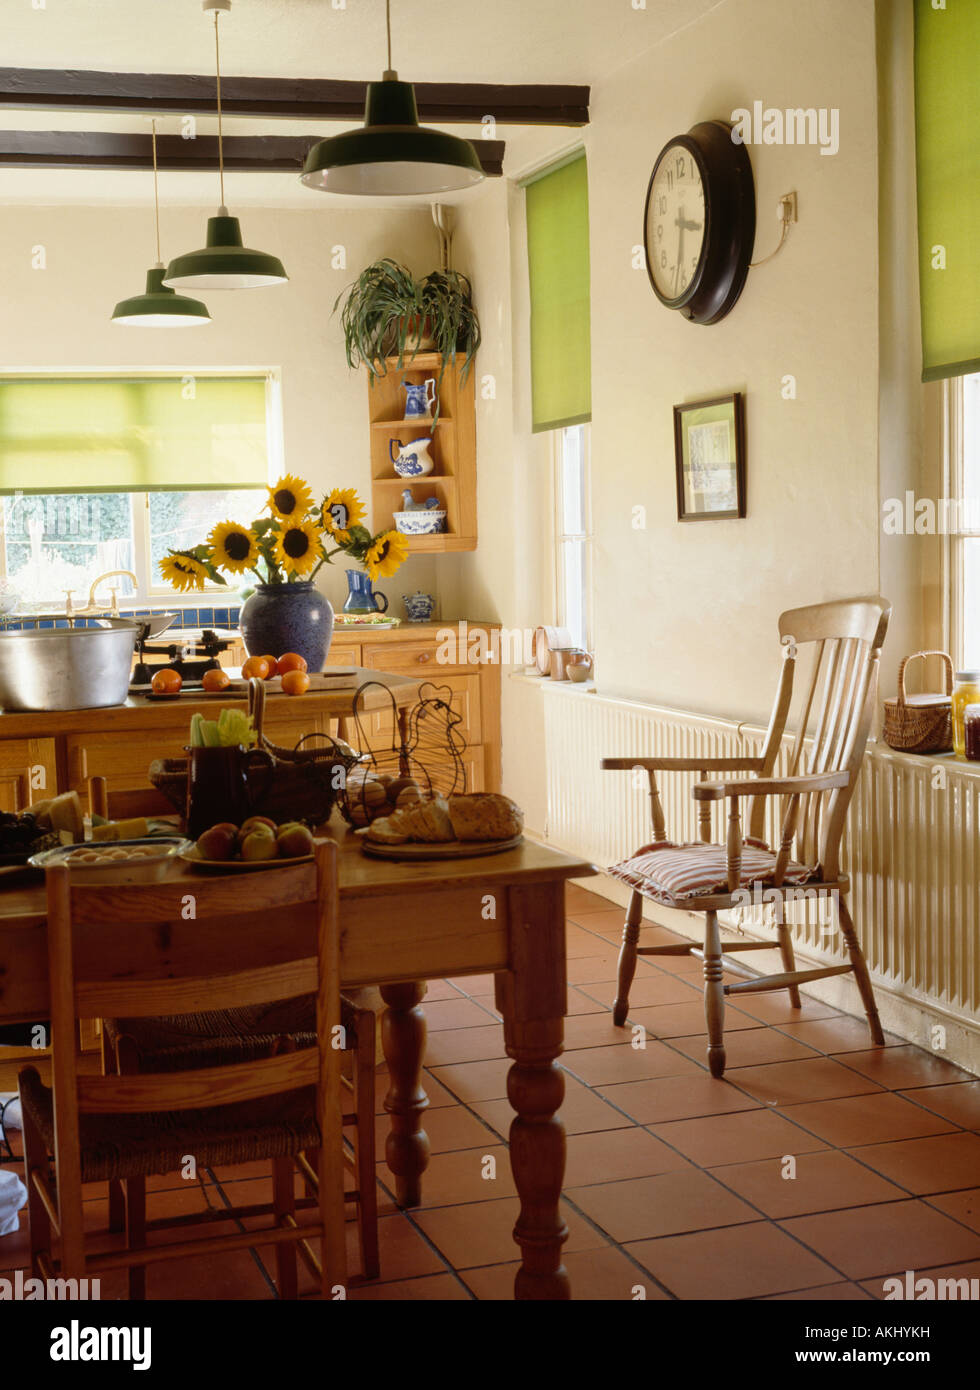 Terracotta Kitchen Floor Pine Table And Chairs In Kitchen With Terracotta Tiled Floor And